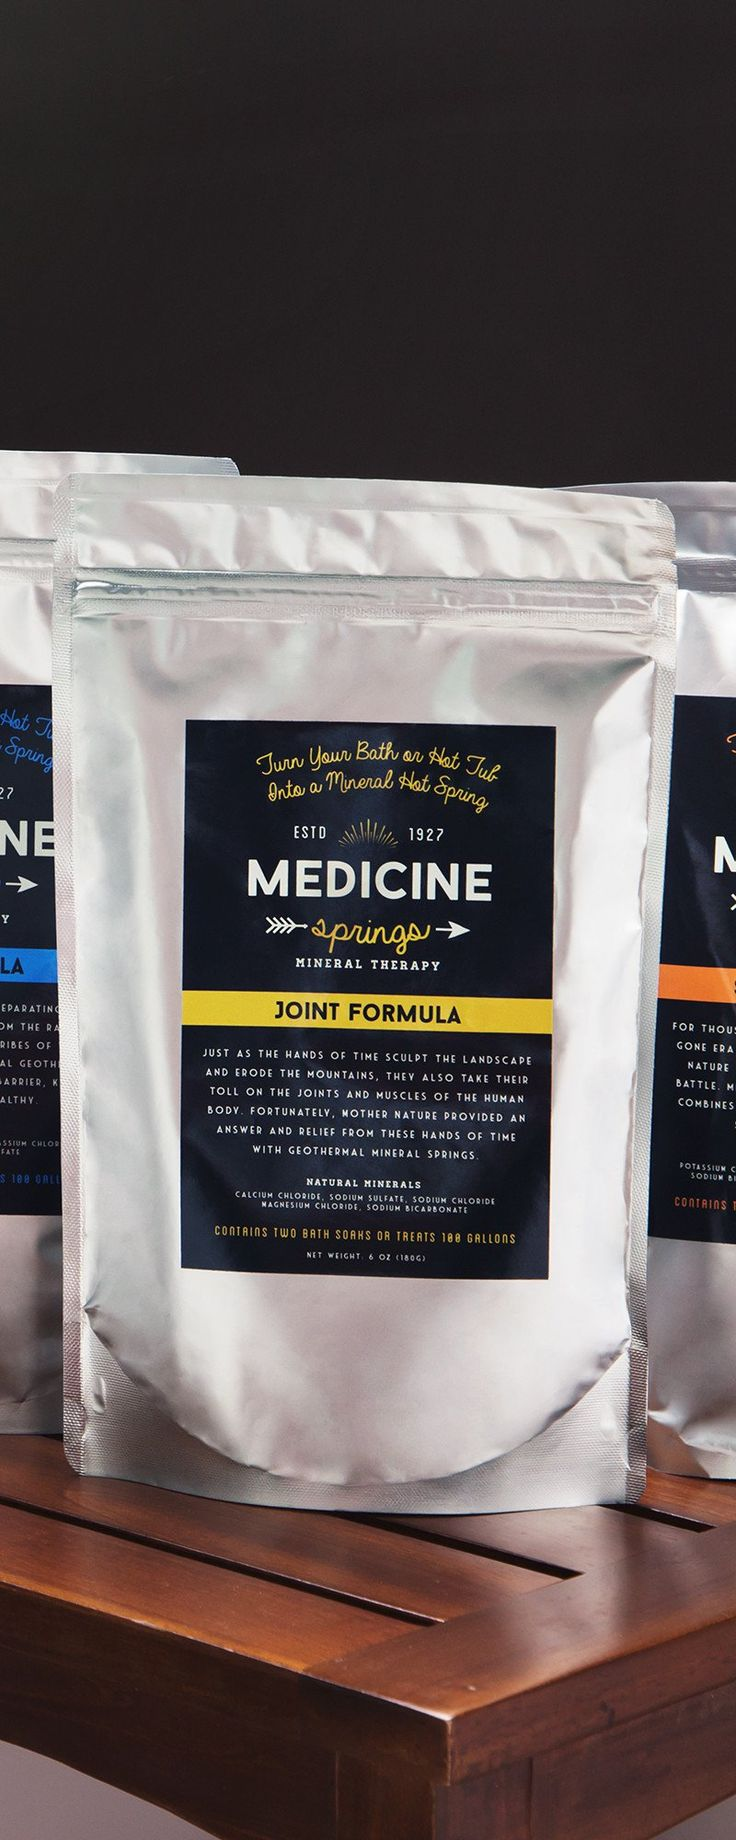 Medicine Springs's rejuvinating bath salts, discovered by The Grommet, recreate the healing waters of natural hot springs around the world. Made in the USA.